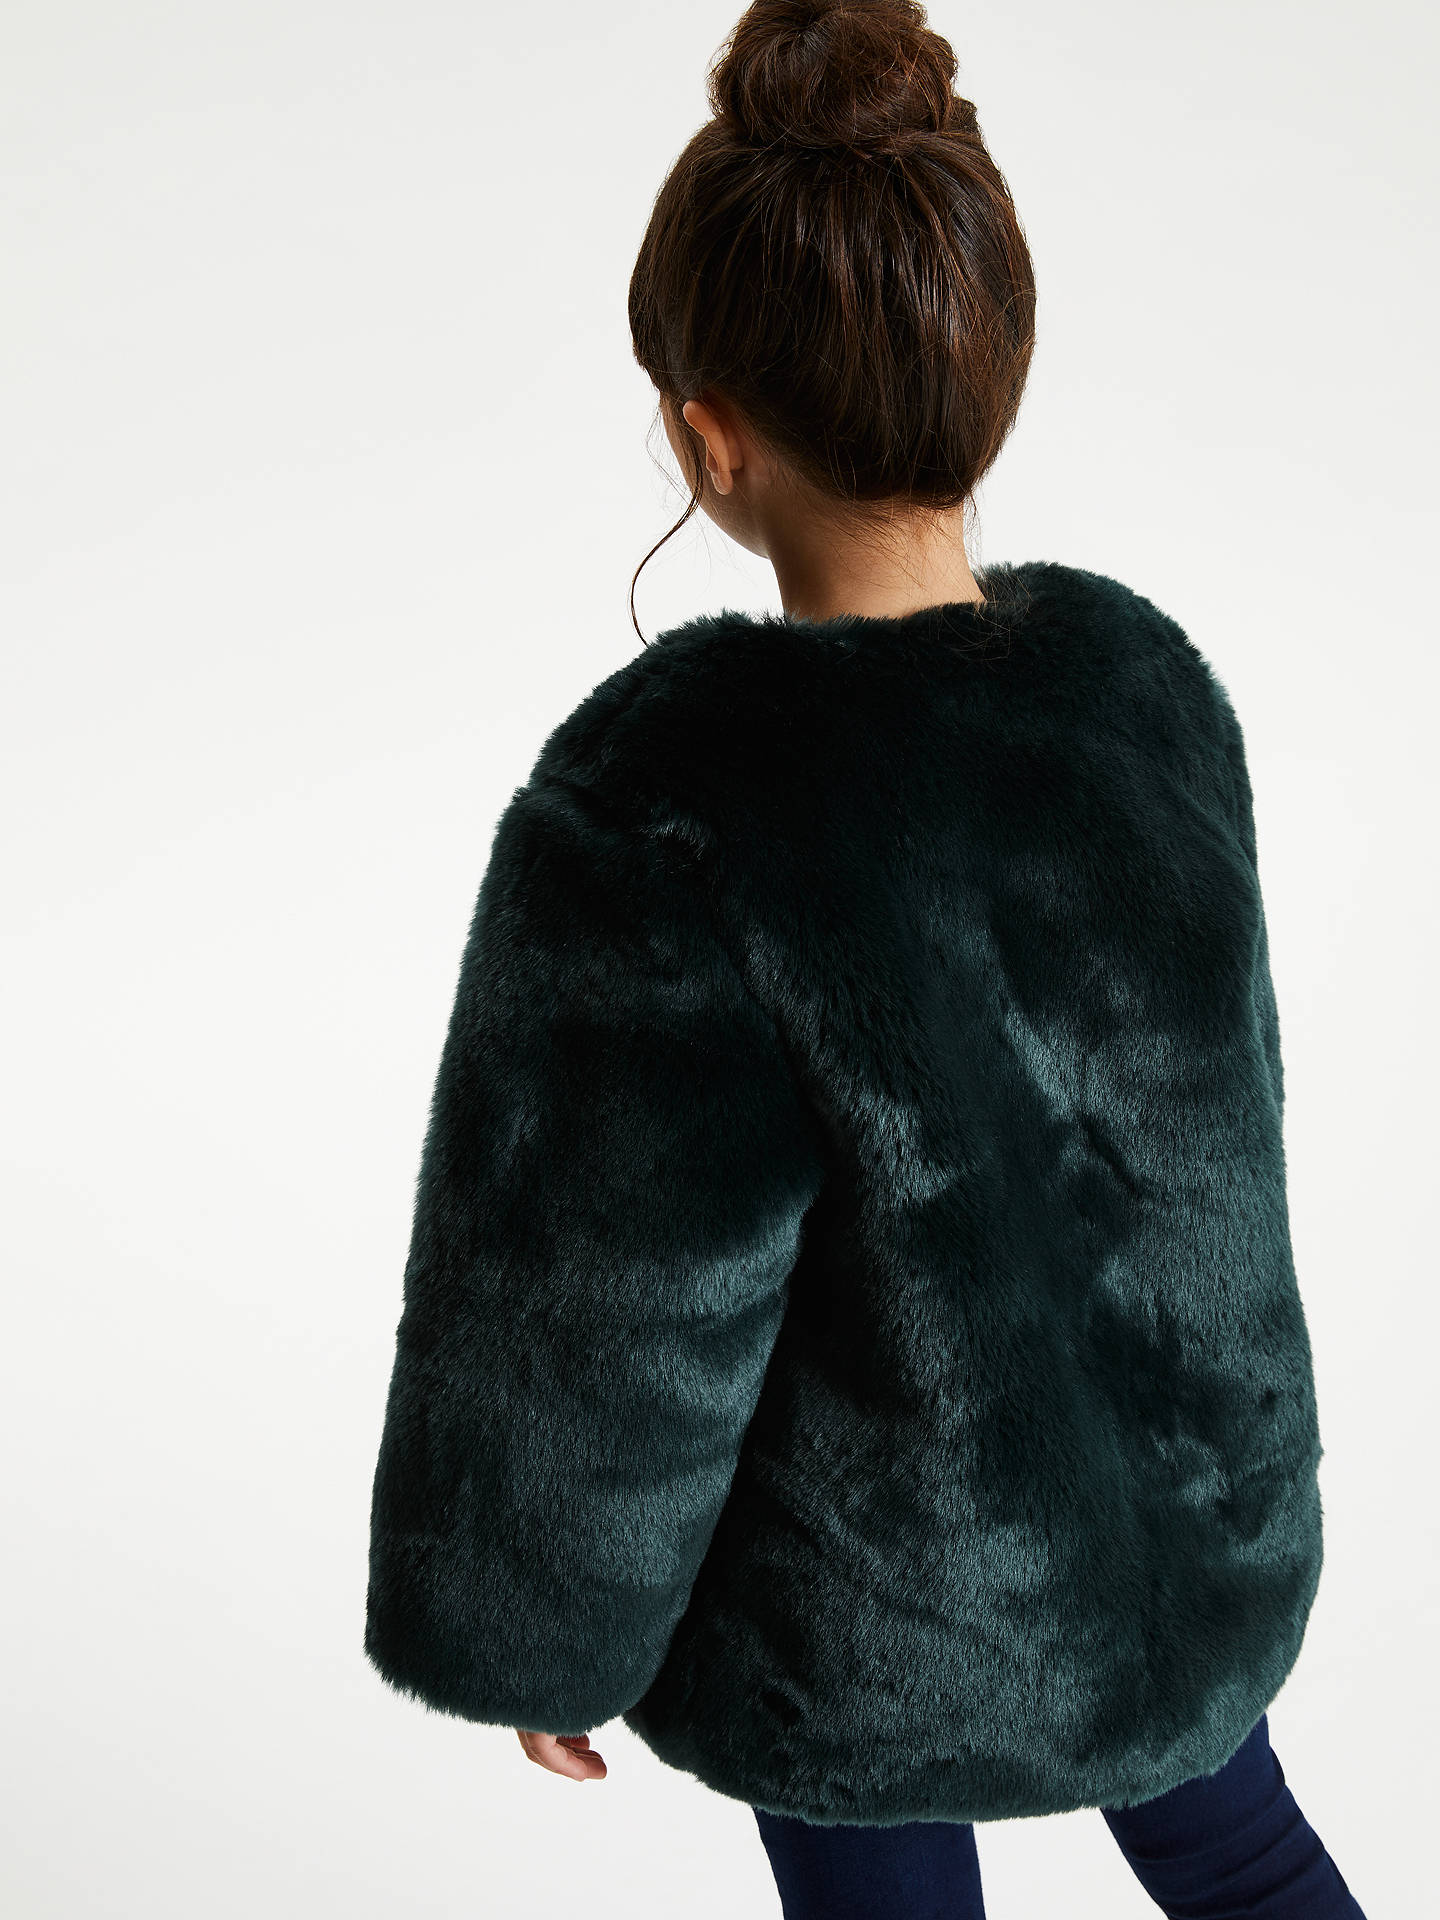 Buy John Lewis & Partners Girls' Faux Fur Coat, Green, 3 years Online at johnlewis.com